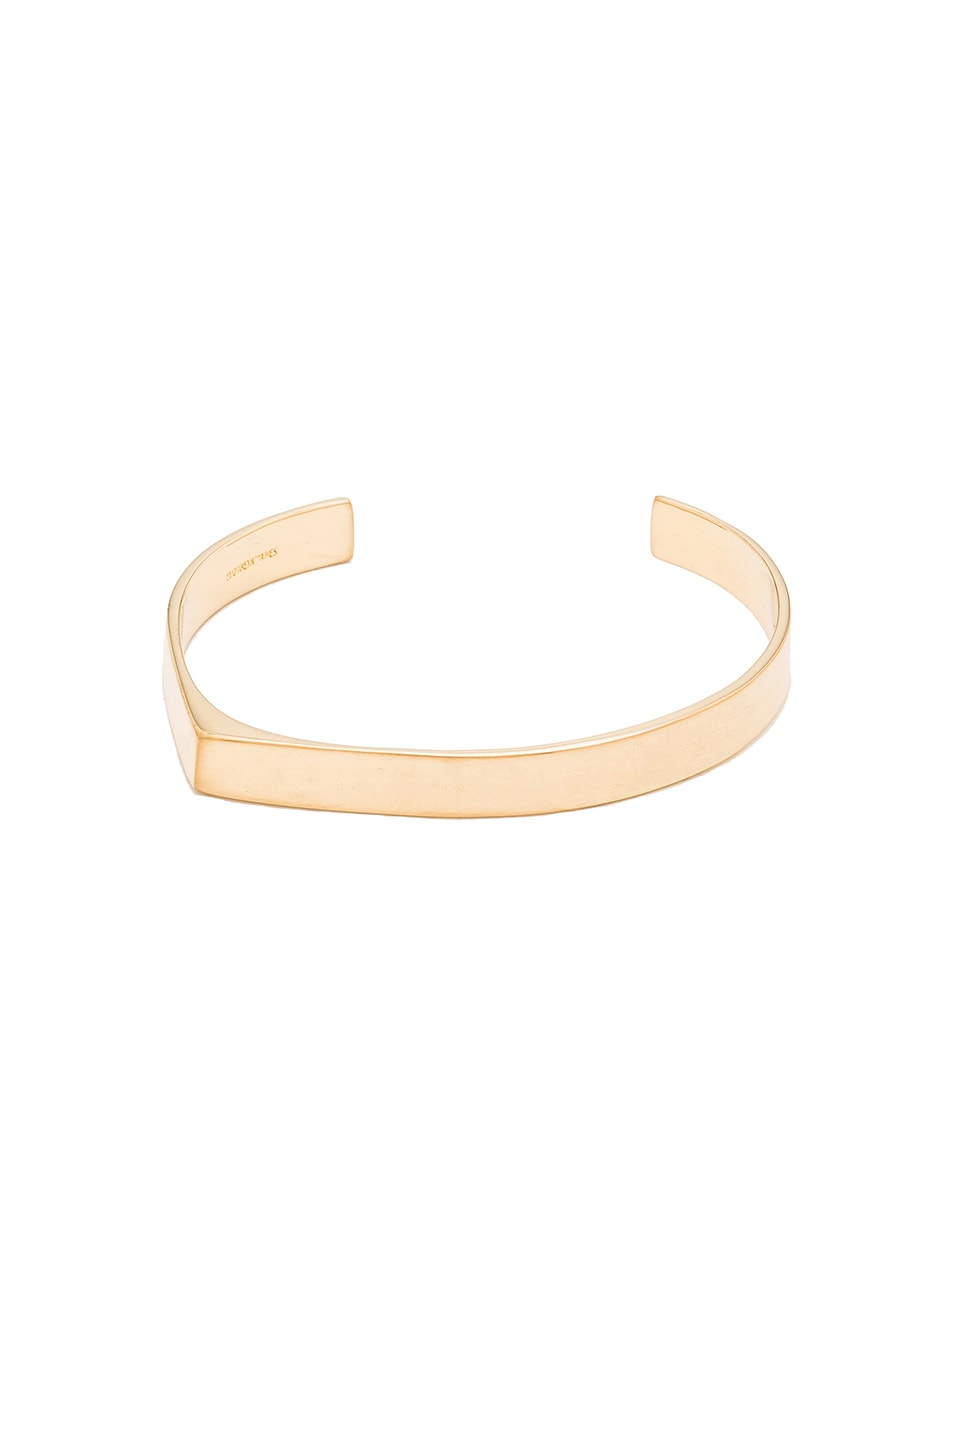 Elizabeth and James Quinn Cuff in Yellow Gold